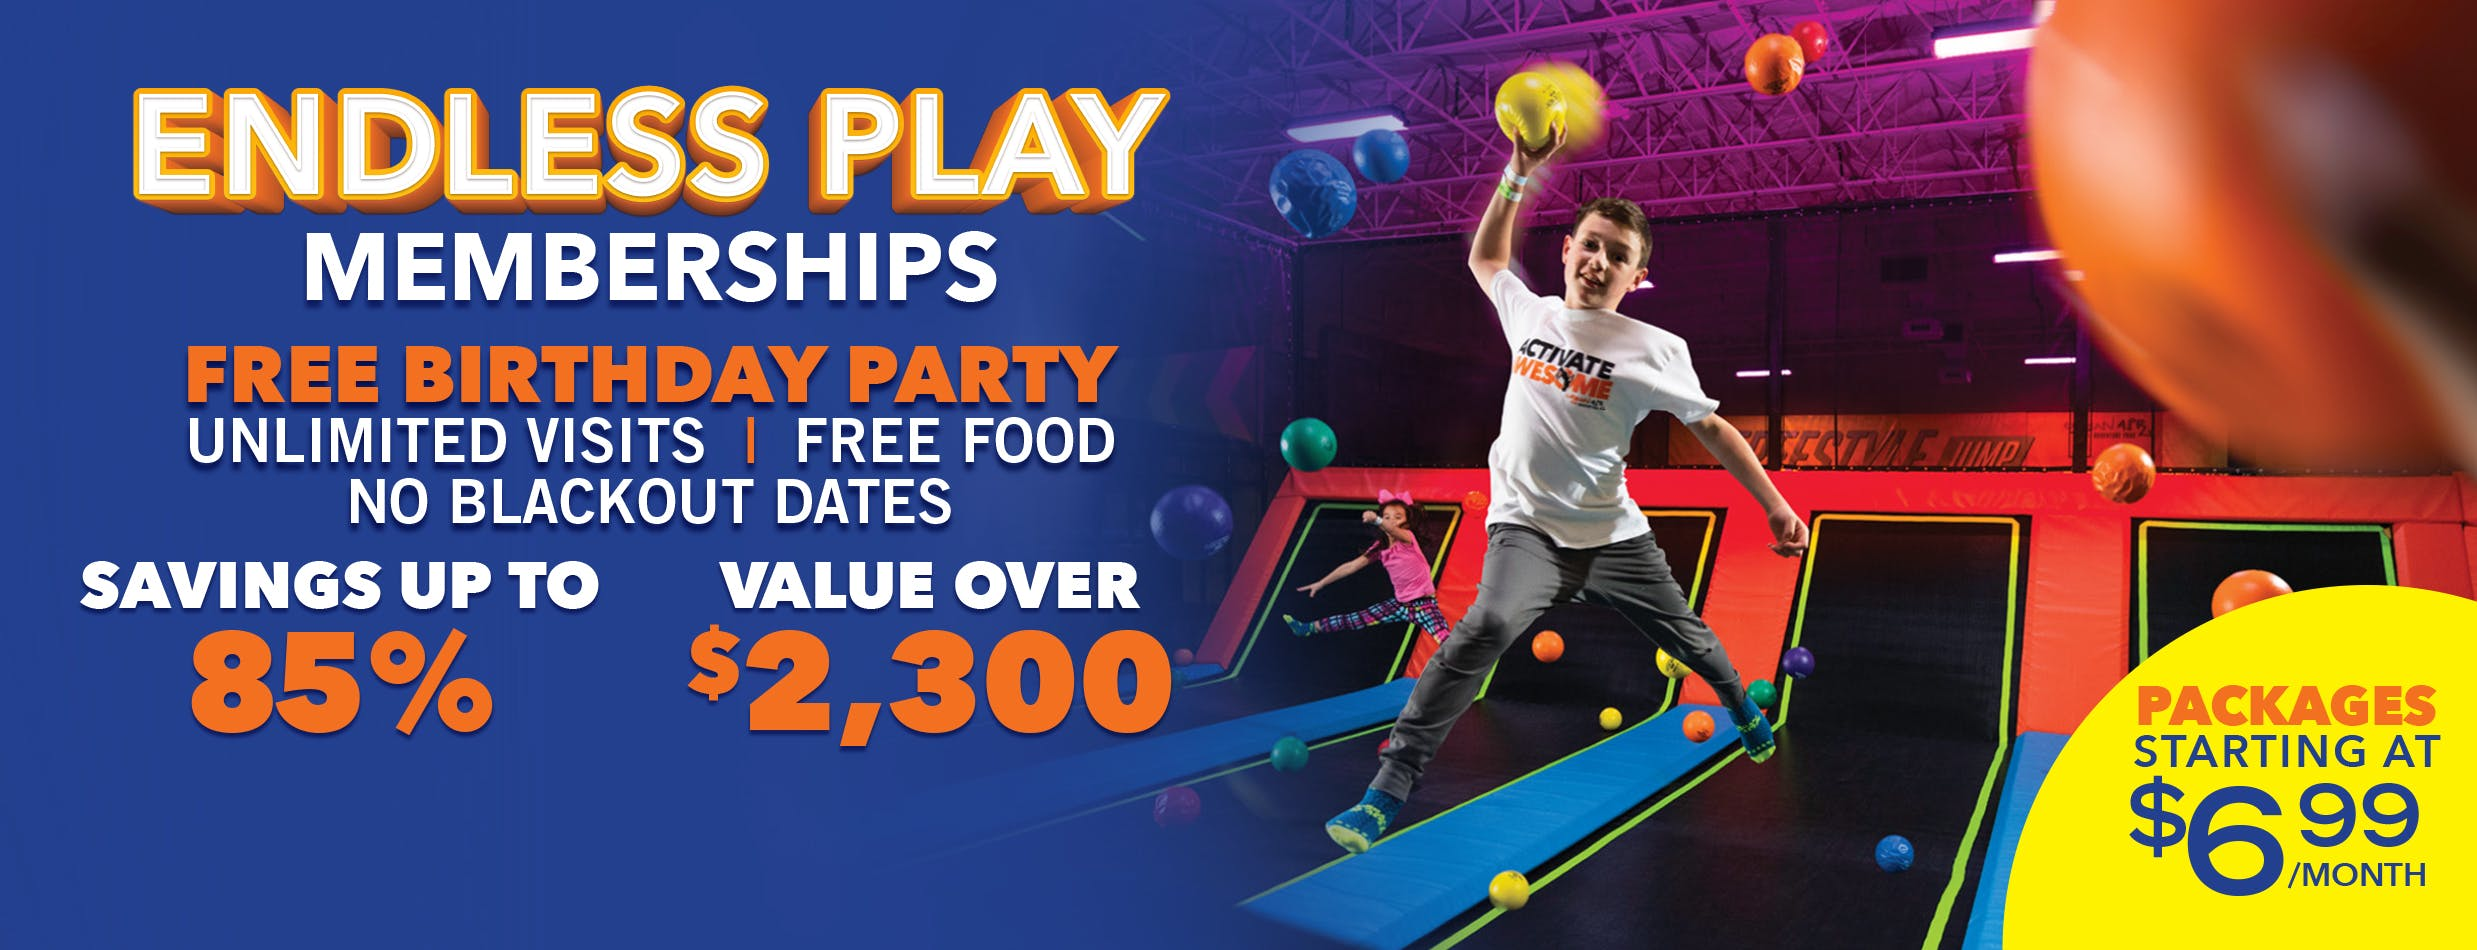 Kid Friendly Family Fun Attractions In South Portland Me Urban Air Trampoline And Adventure Park